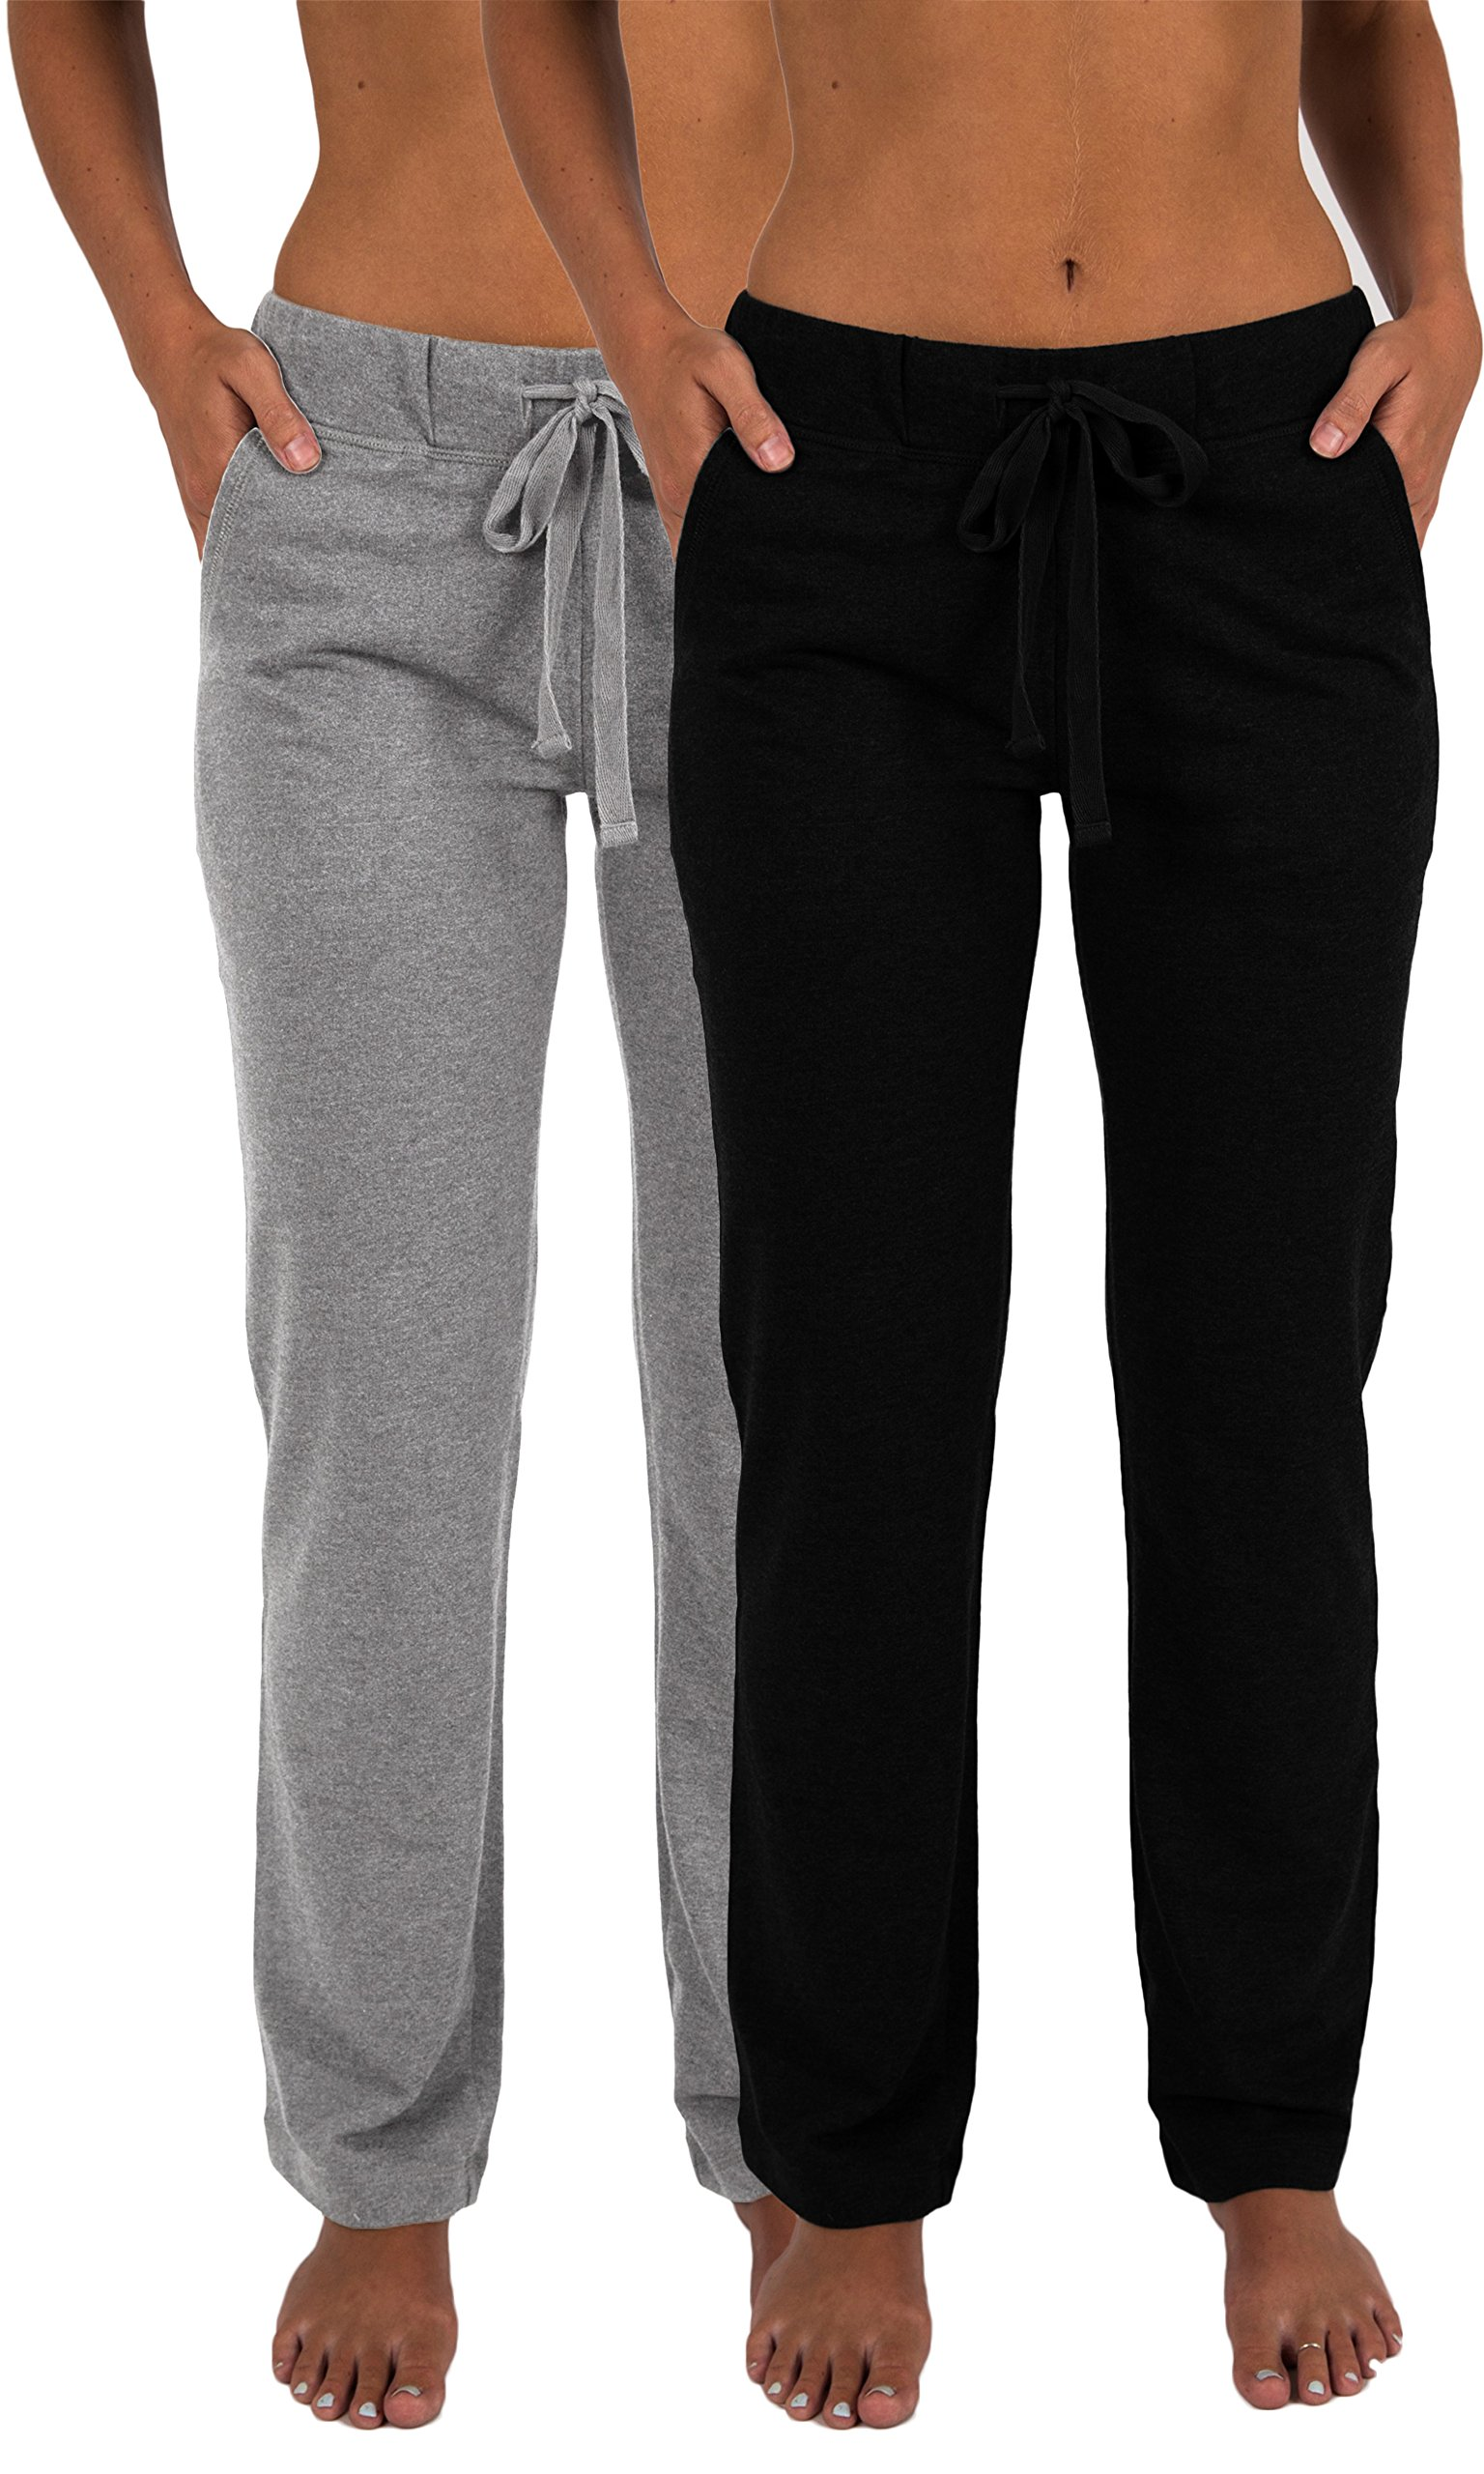 Sexy Basics Women's 2 Pack Ultra Soft French Terry Cotton Drawstring Yoga Lounge Long Pants (2 Pack- Black & Grey, X-Large) by Sexy Basics